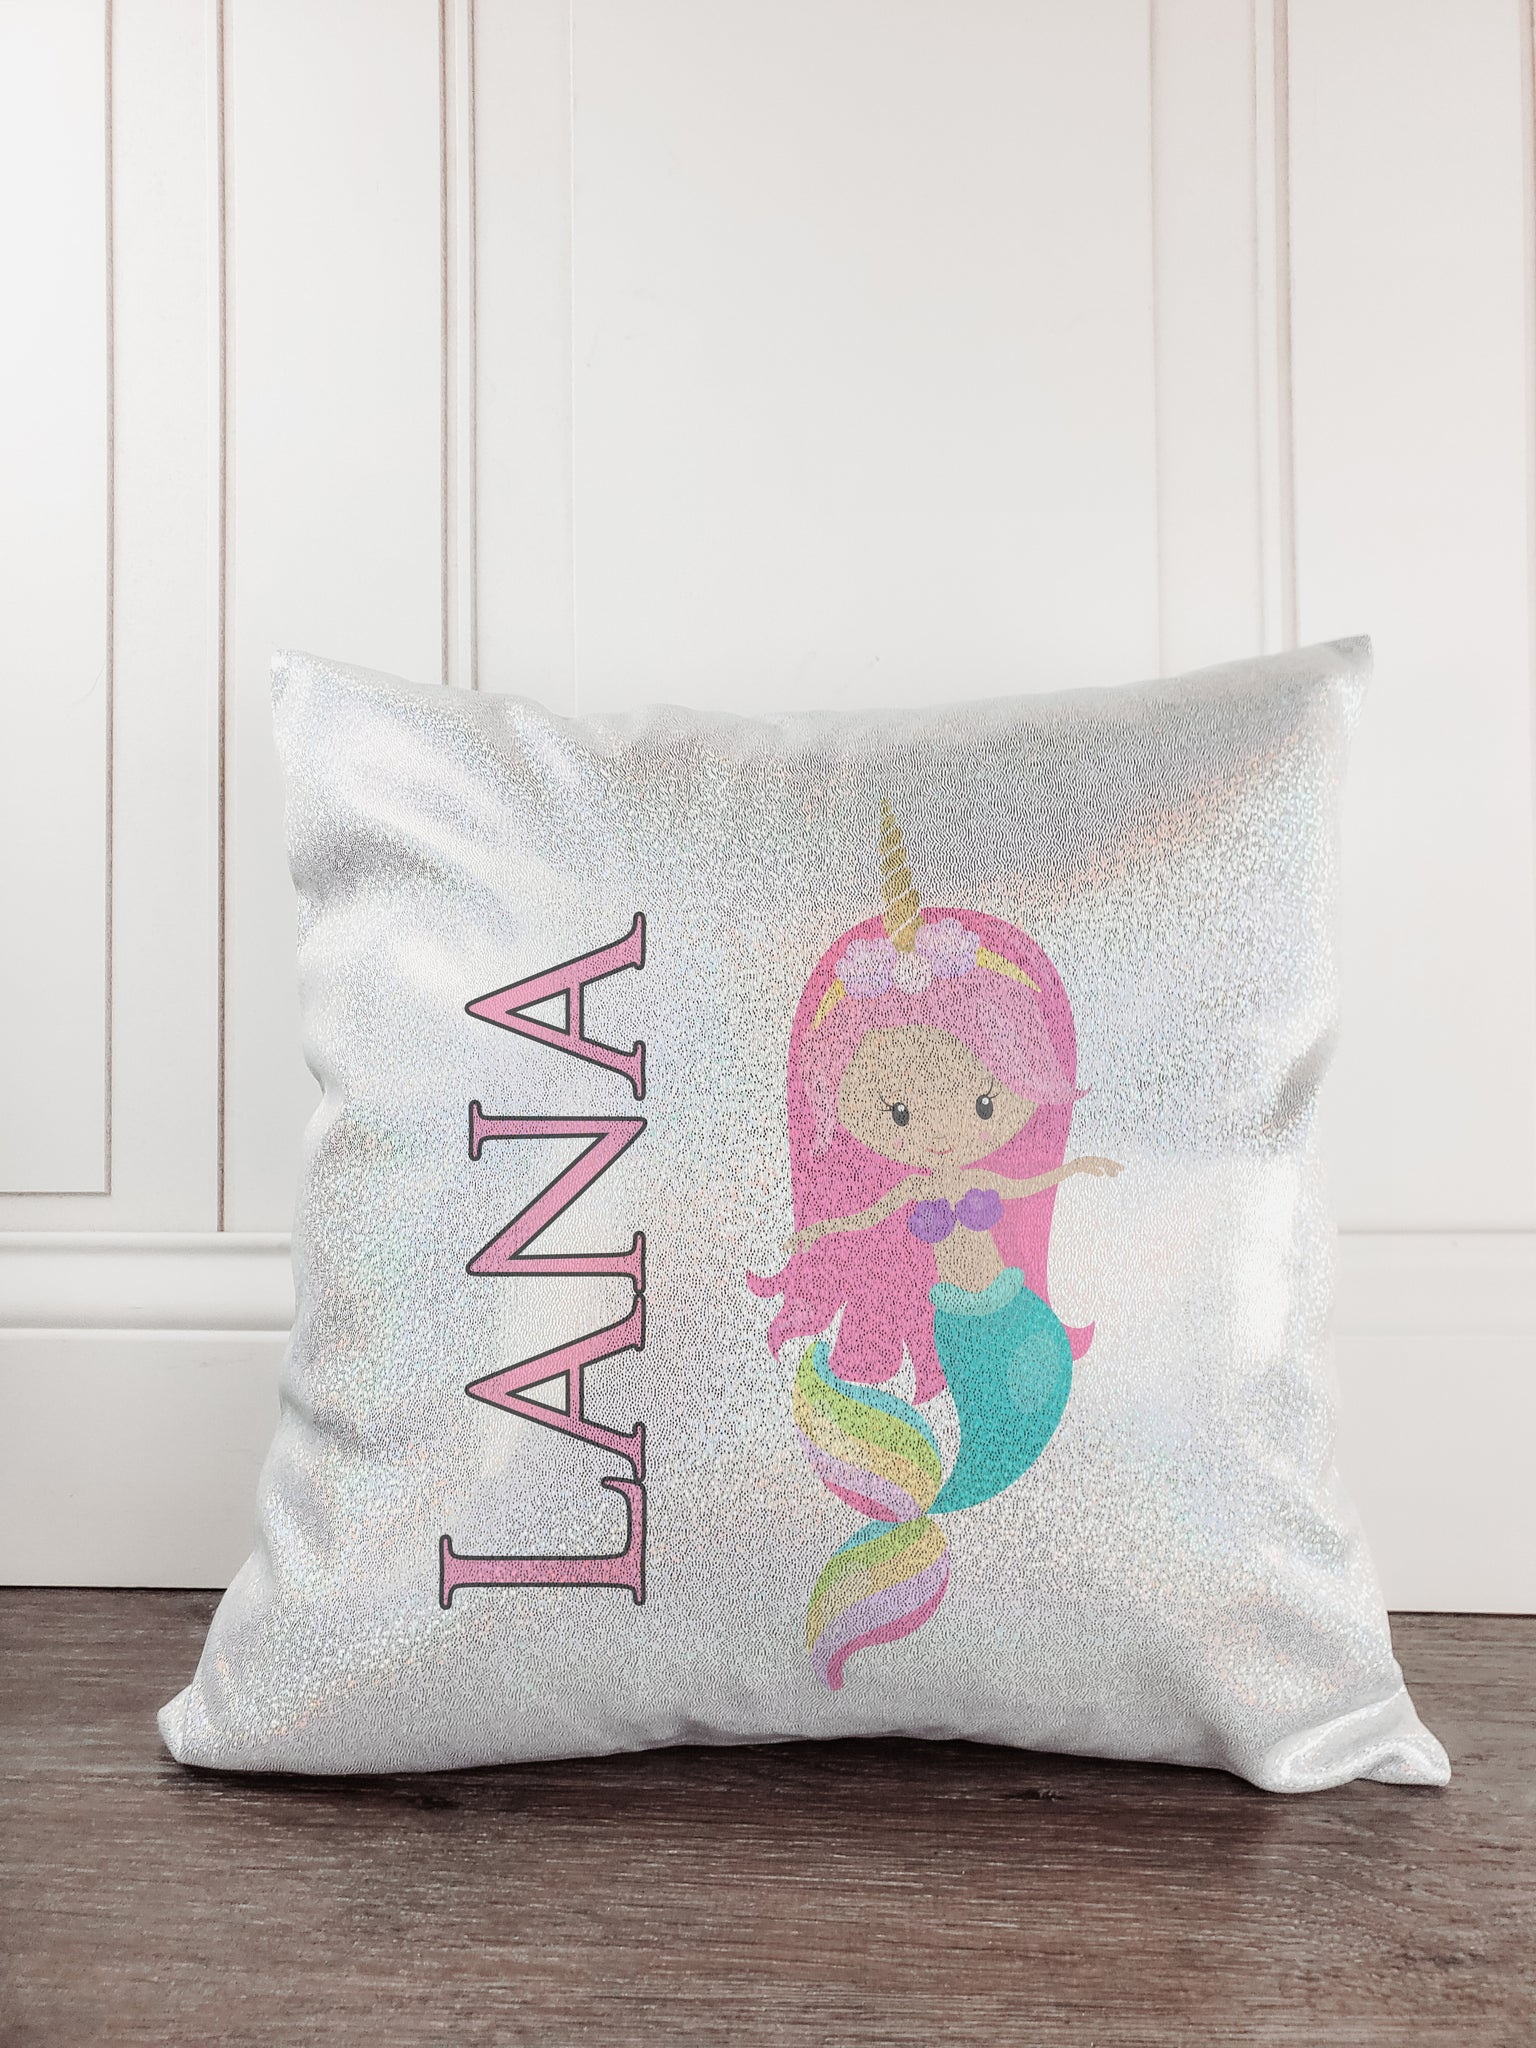 Mermaid with Horn Personalized Glitter Sparkle Pillow Cover - Incandescently - Glitter Sparkle Throw Pillows - Farmhouse Decor